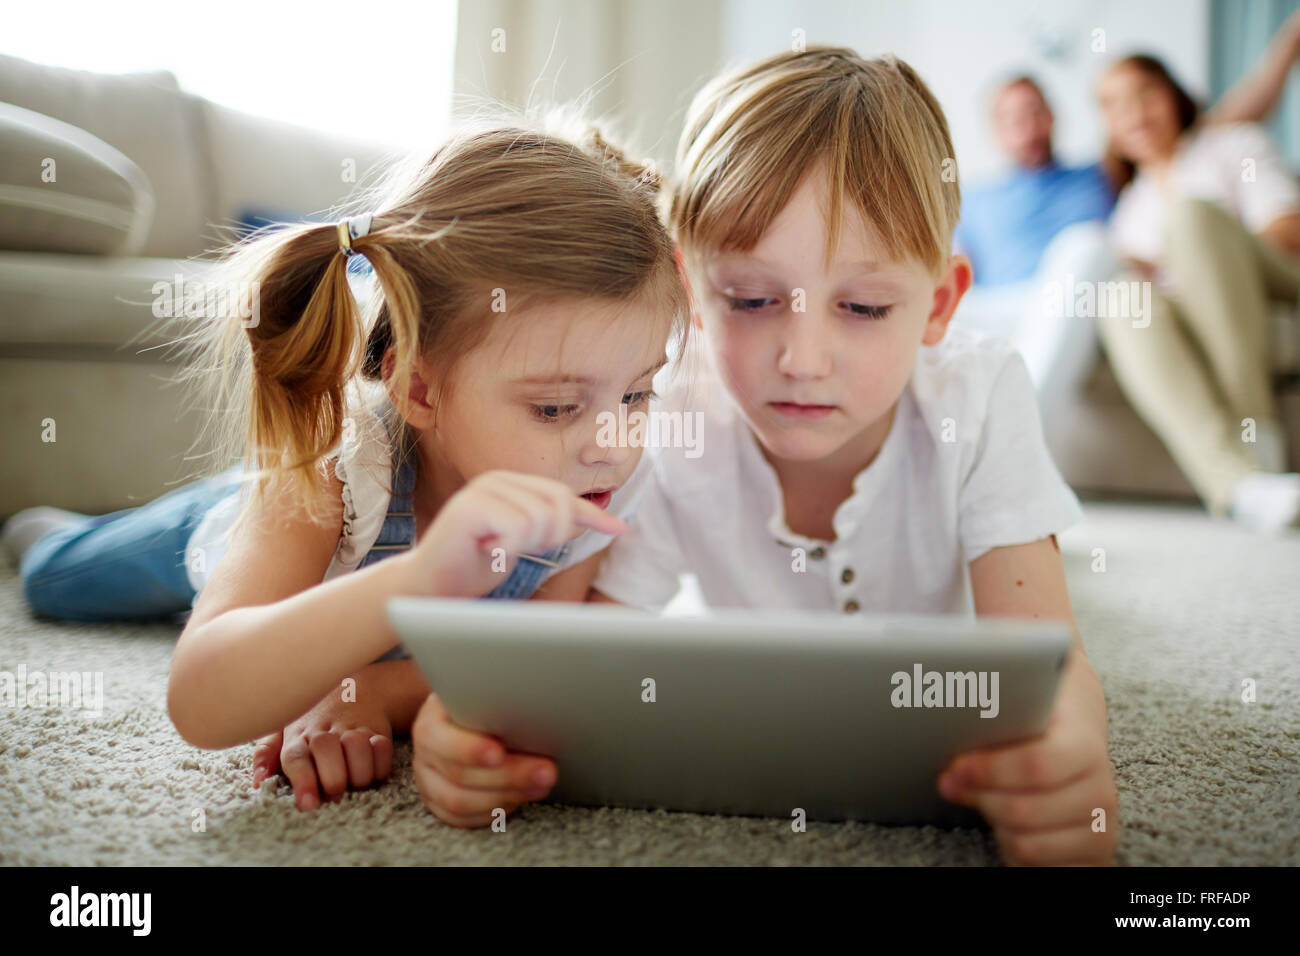 Networking kids - Stock Image